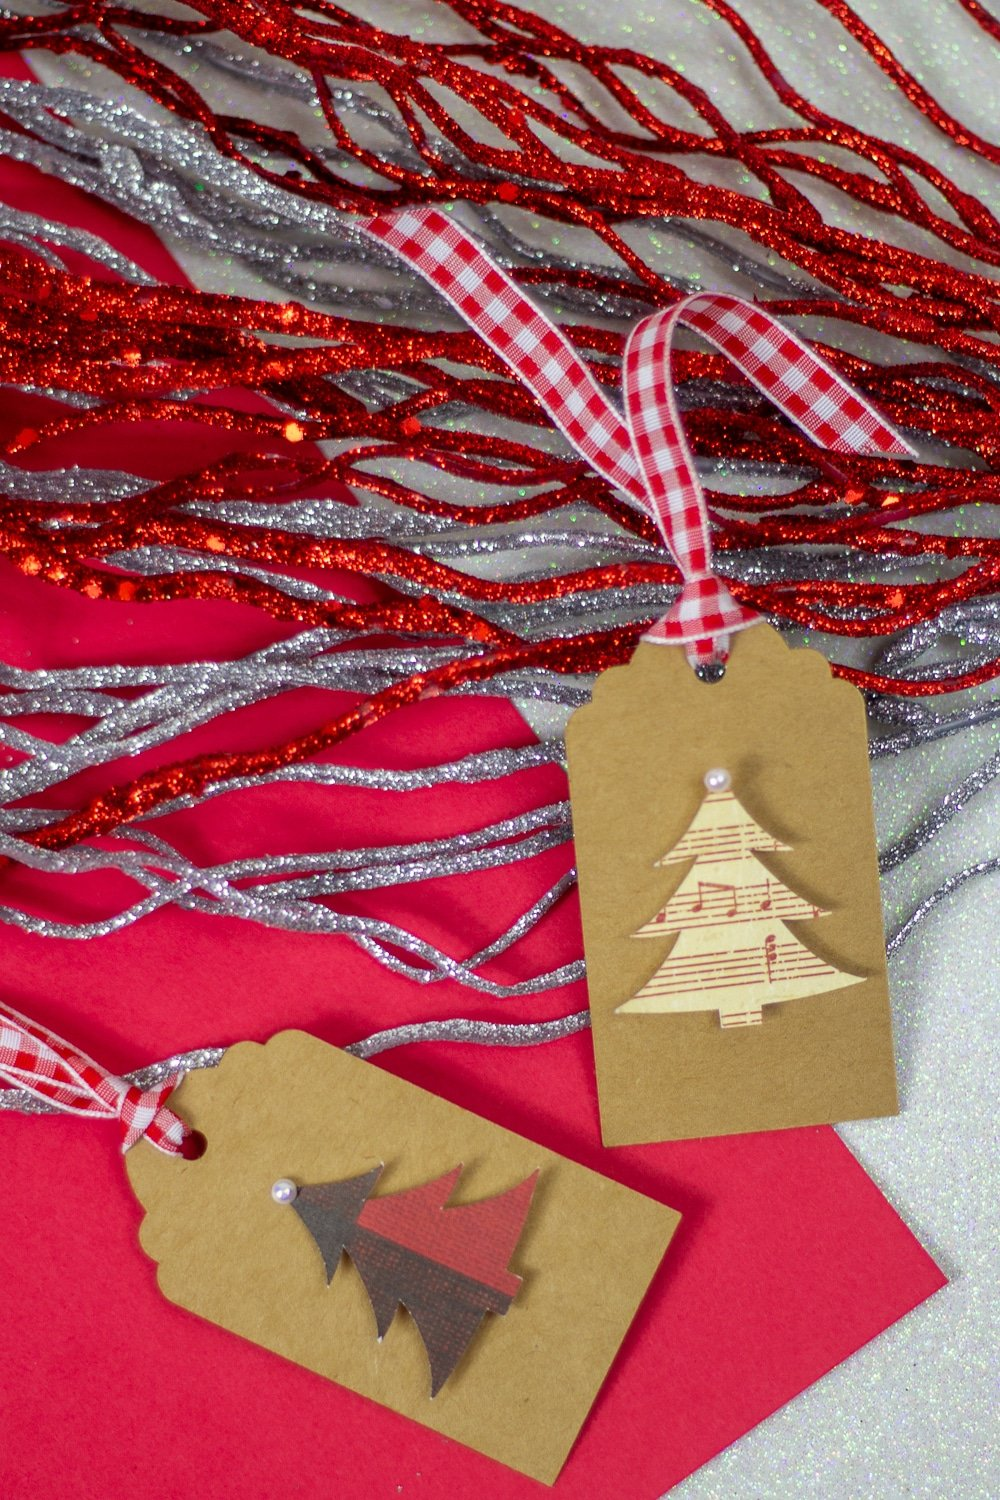 Image of a Christmas tree with note music gift tag with red and silver gilttery pip cleaners in the background.